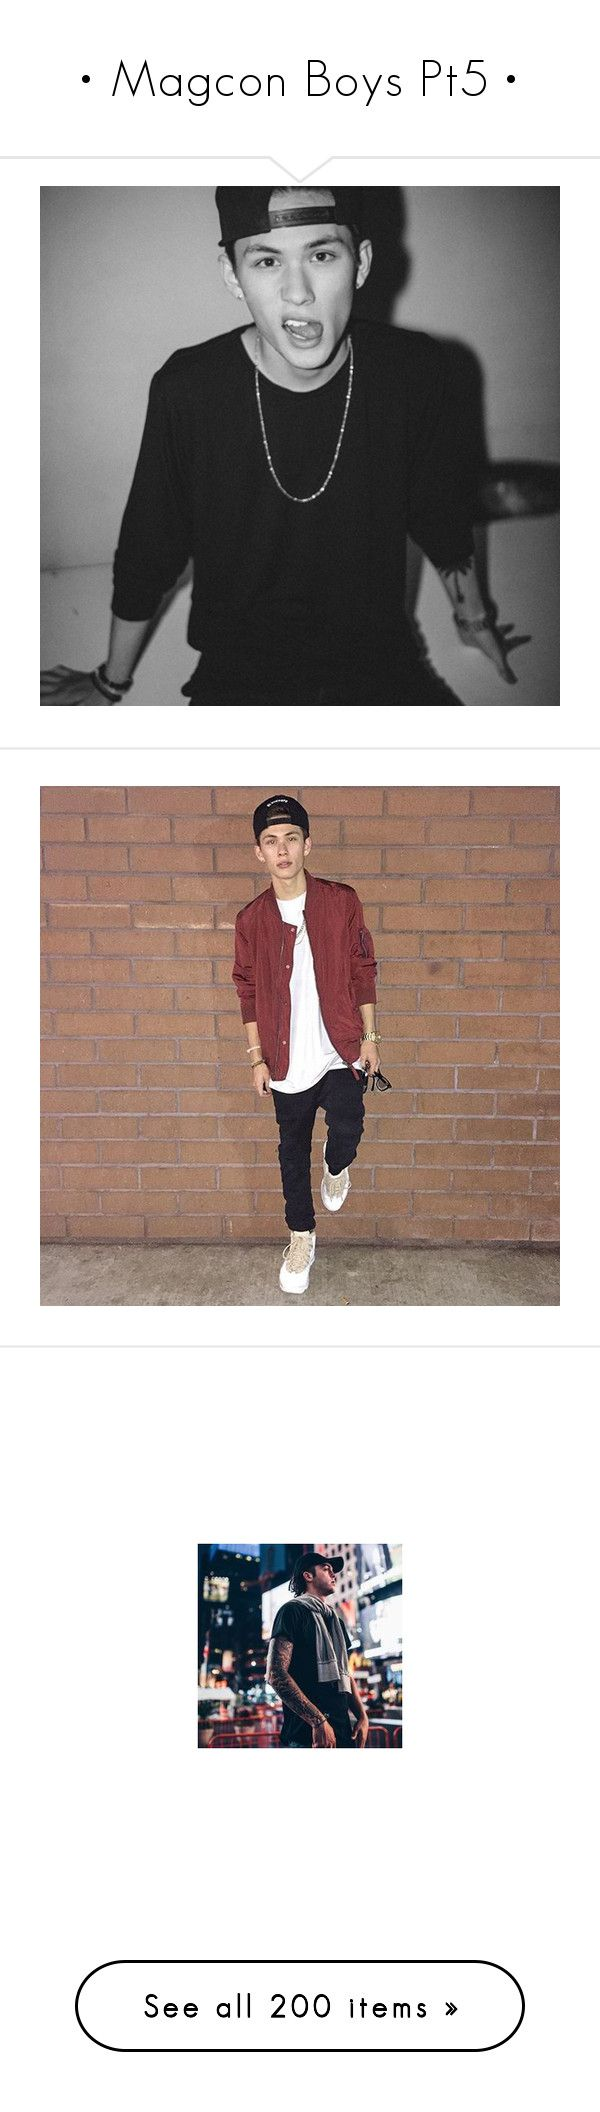 """• Magcon Boys Pt5 •"" by krecioch ❤ liked on Polyvore featuring nate maloley, cameron, cameron dallas, nash grier, youtube, carter reynolds, magcon, shawn mendes, famous people and pictures"